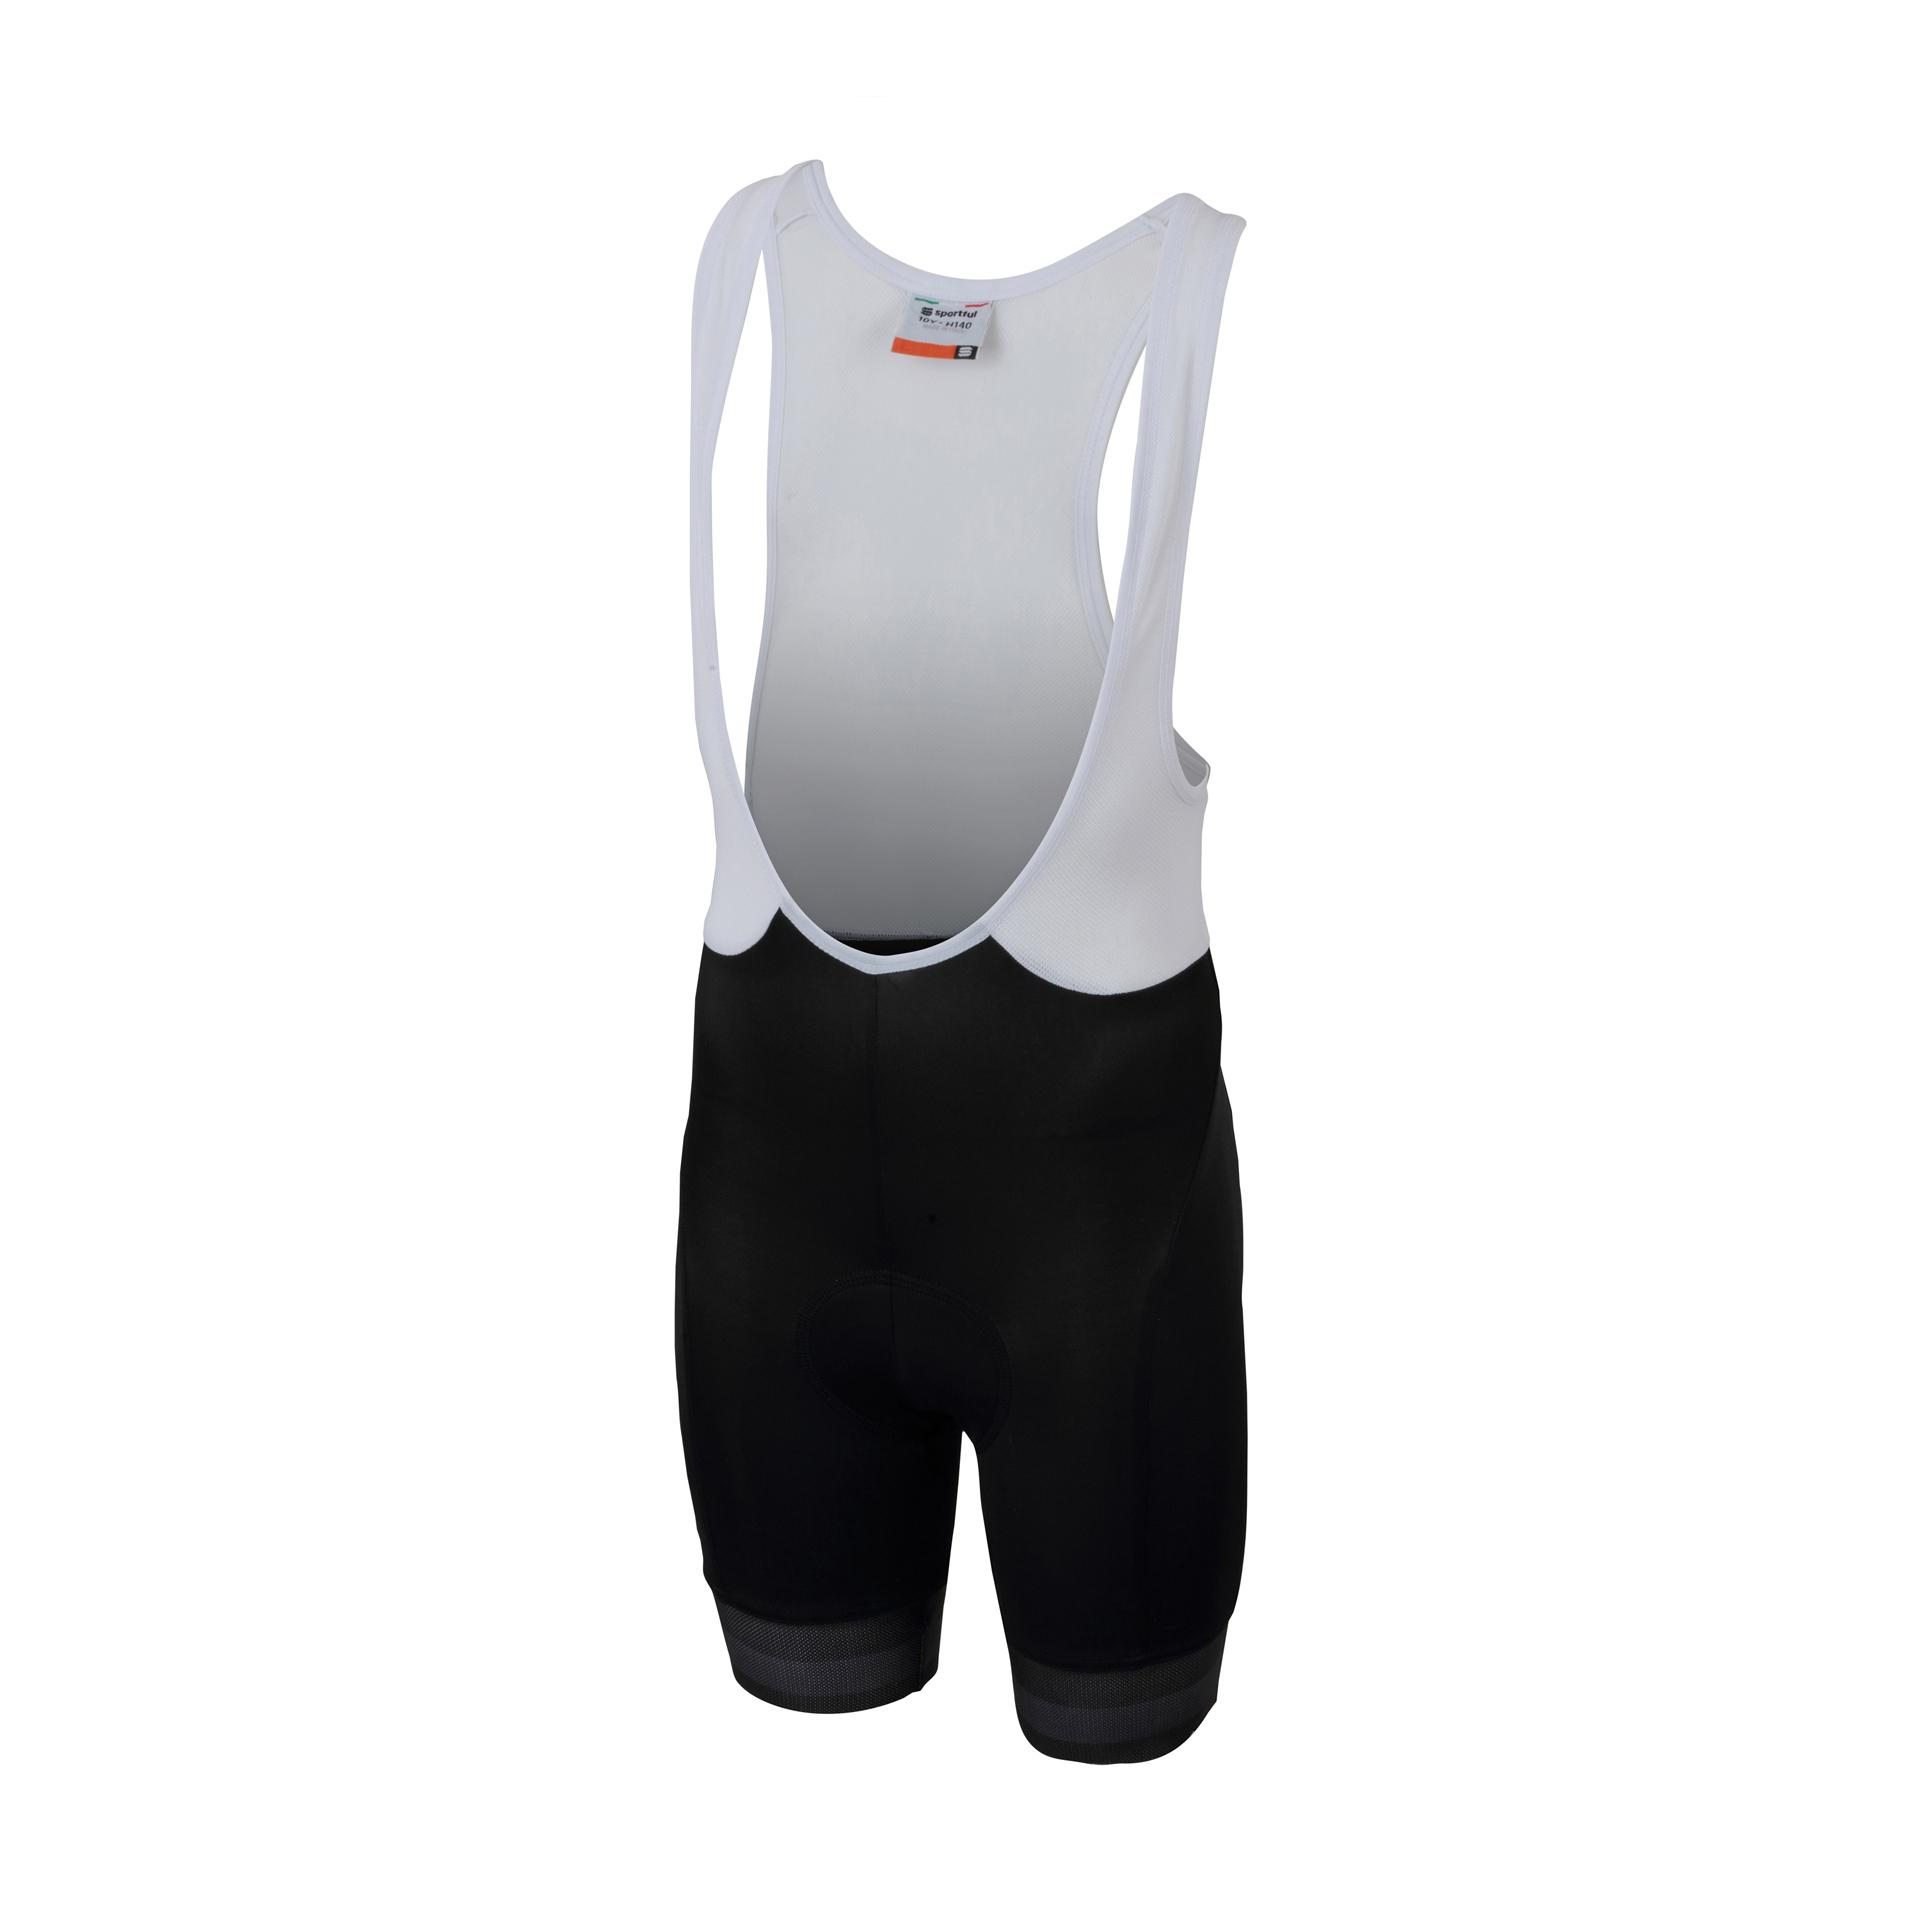 Sportful Fietsbroek met bretels - koersbroek Kids Zwart  / SF Tour 2.0 Kid Bibshort-Black